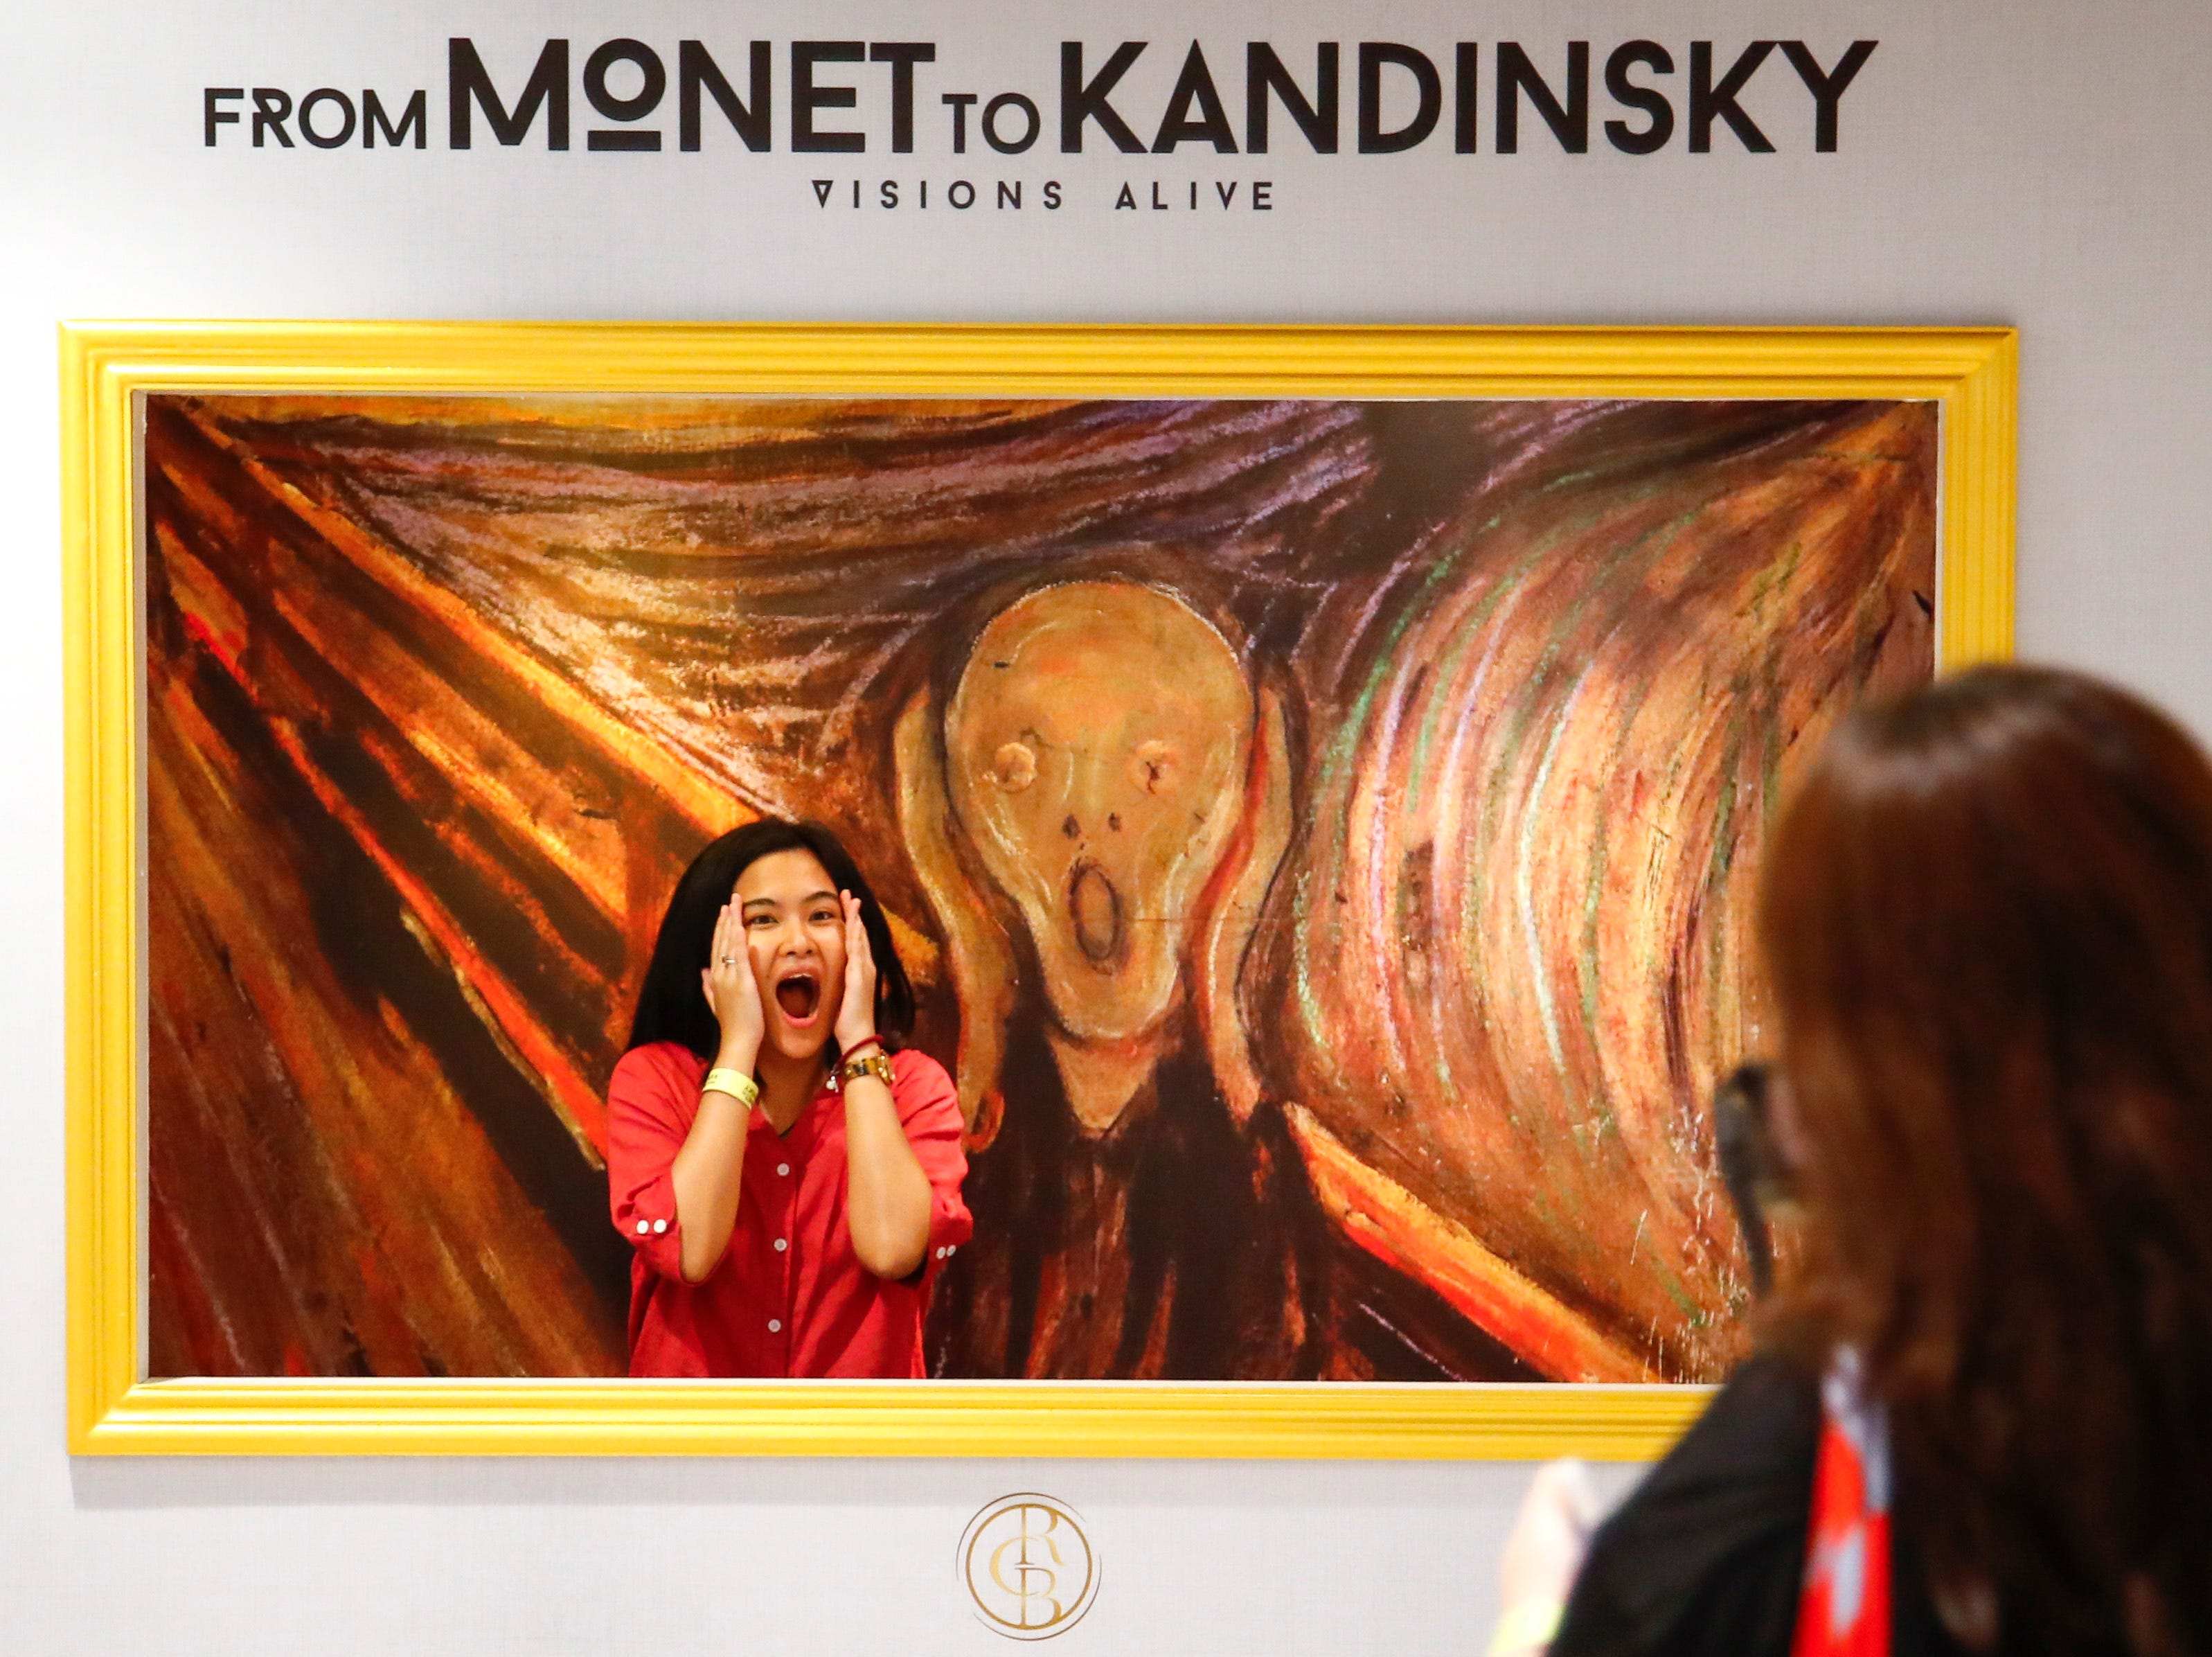 A visitor poses in front of a reproduction of 'The Scream' by Norwegian painter Edvard Munch (1863-1944) at the 'From Monet to Kandinsky' exhibit in Bangkok, Thailand on May 18, 2019. The multimedia exhibit showcases over 1,500 masterpieces from 16 European artists from the late 19th and early 20th century projected on walls and accompanied with music.